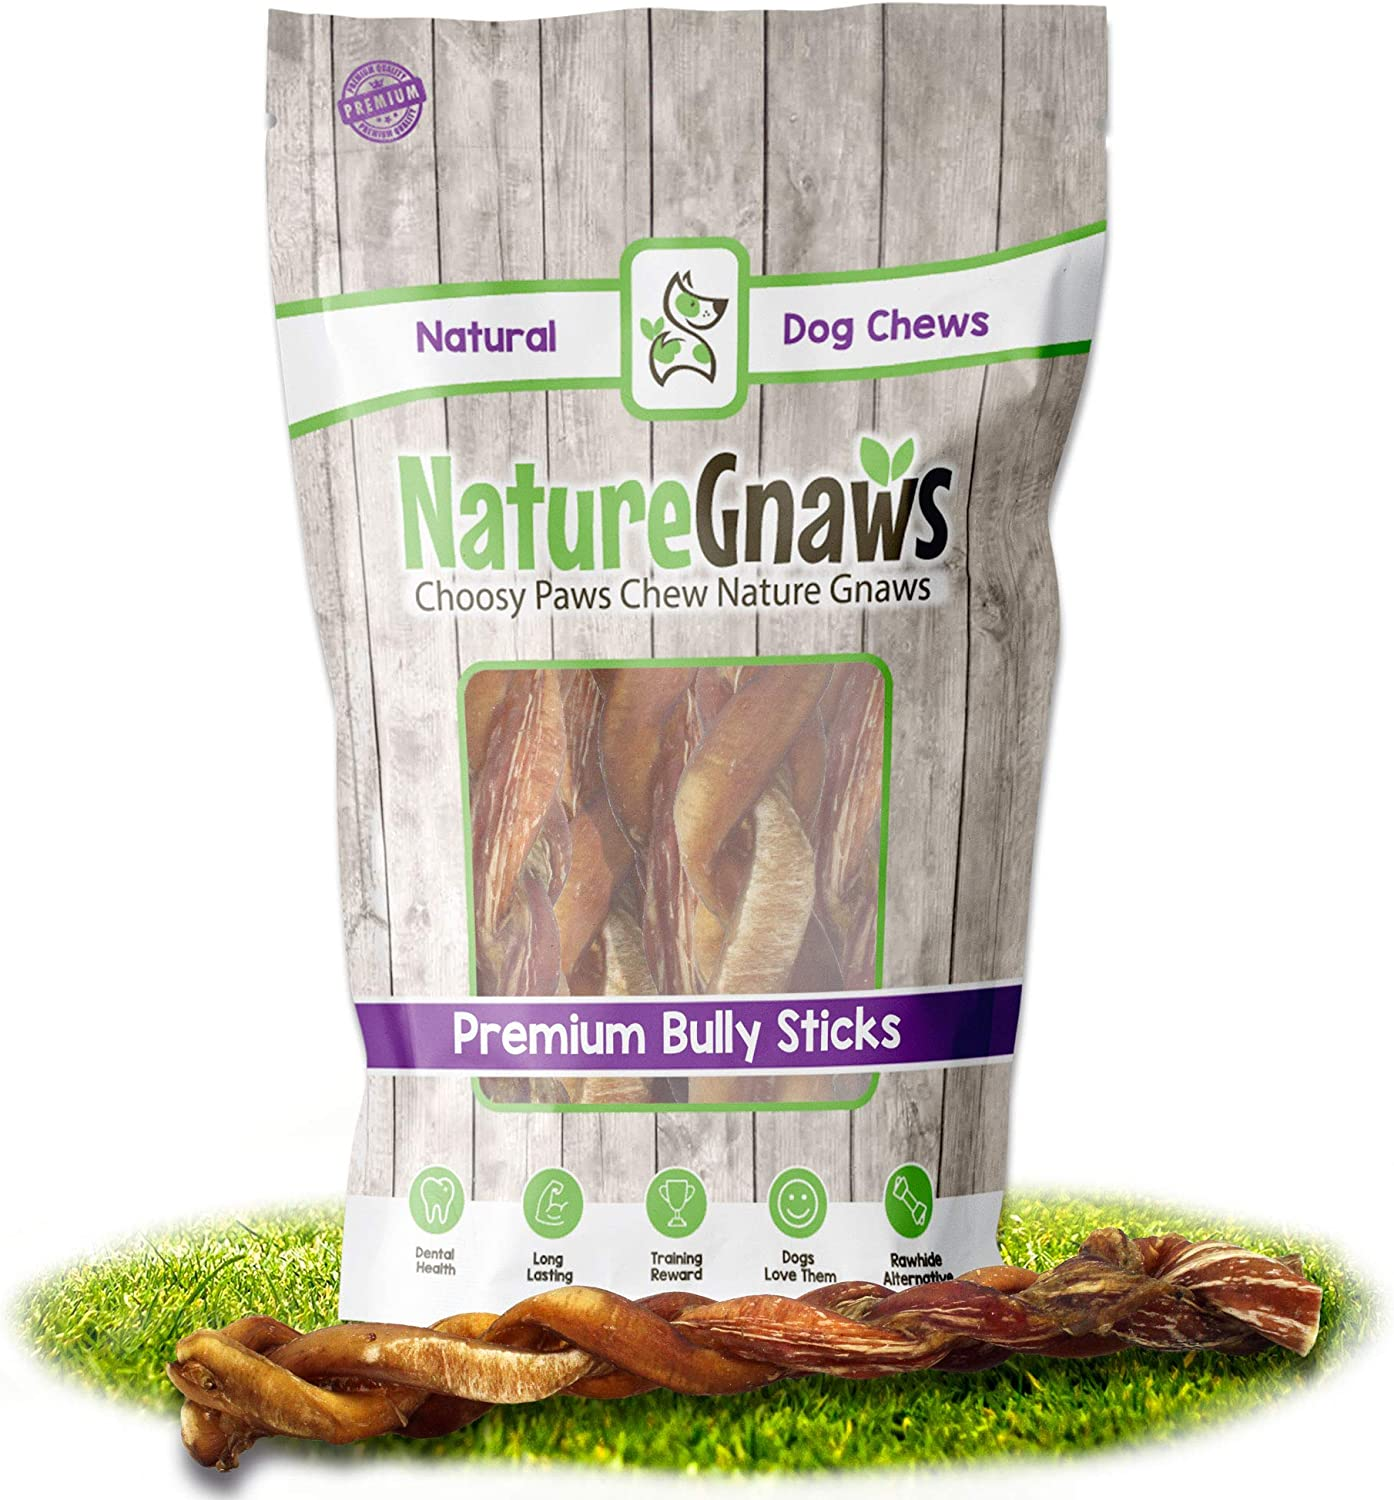 Nature Gnaws Braided Bully Sticks for Large Dogs - Premium Natural Beef Bones - Long Lasting Dog Chew Treats for Aggressive Chewers - Rawhide Free - 12 Inch